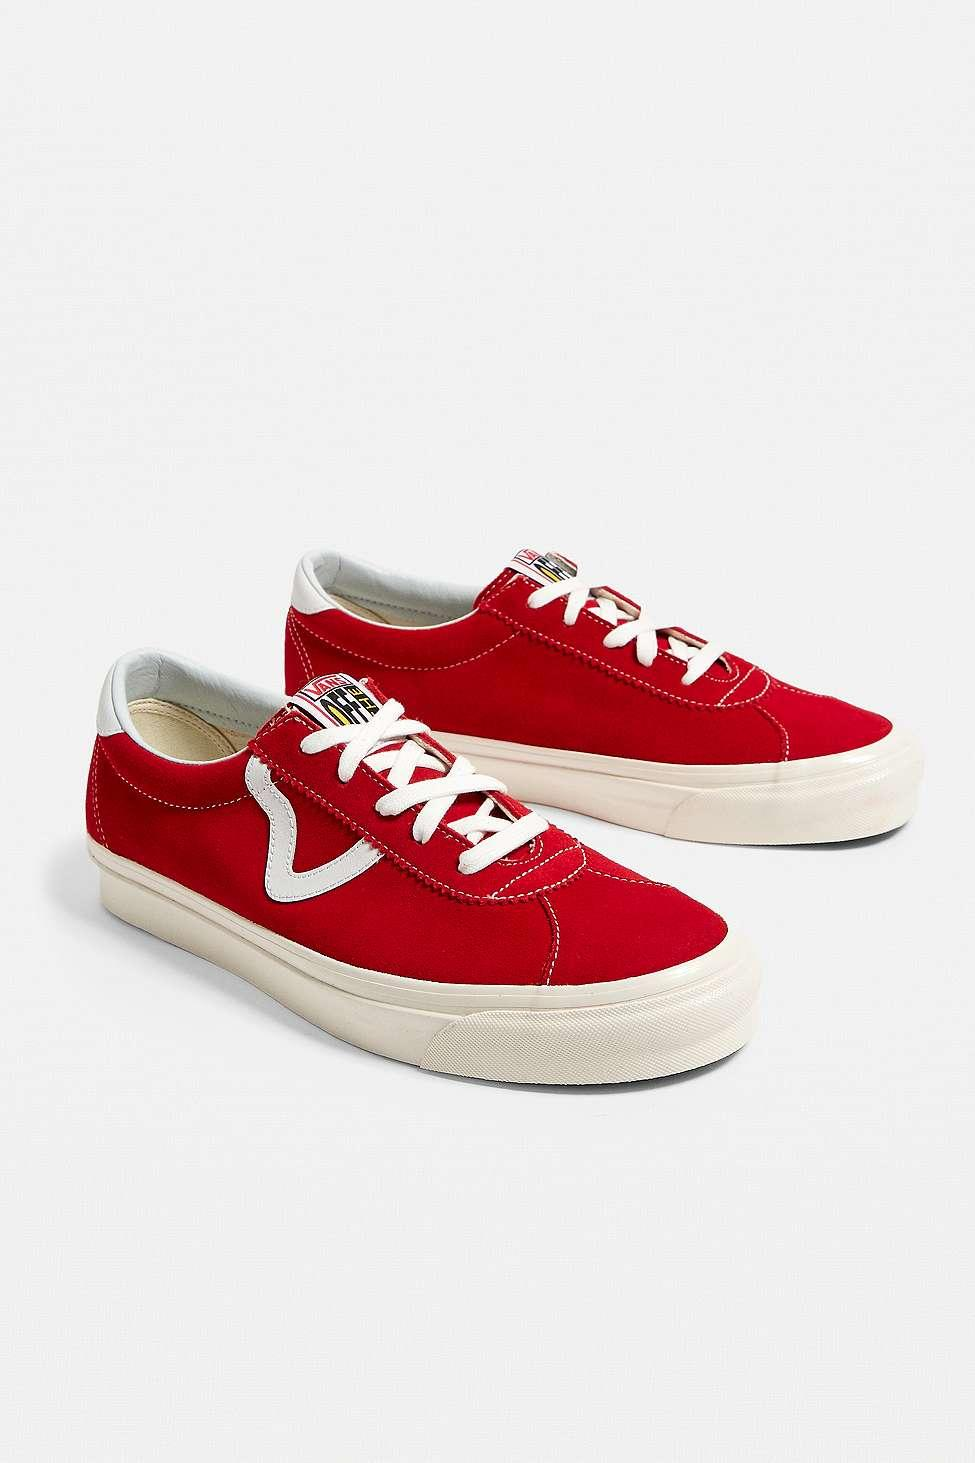 e4c92cf227 Vans Anaheim Factory Authentic Red Suede Trainers - Mens Uk 9 in Red ...